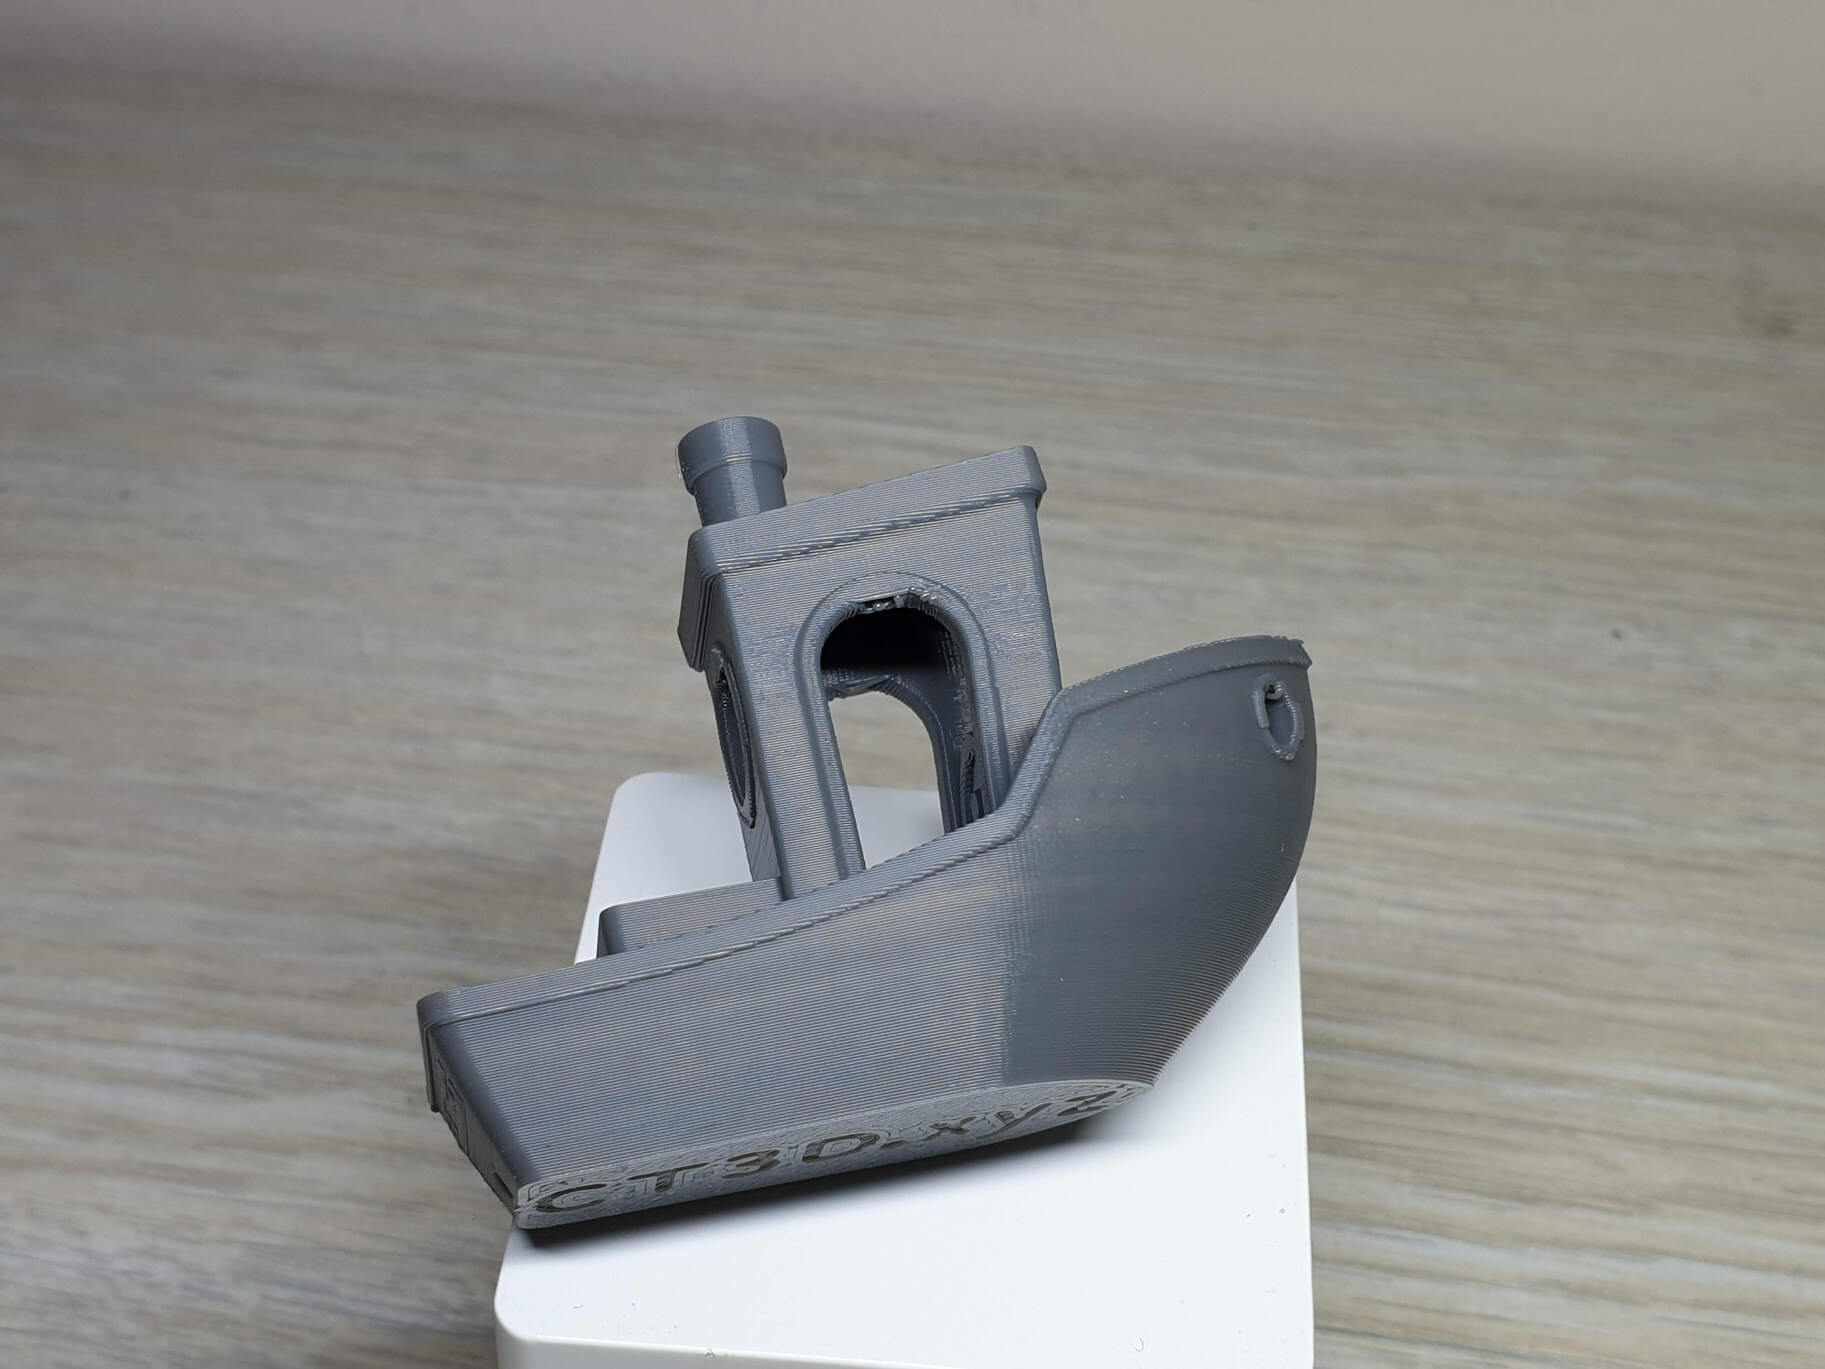 Ideamaker benchy 2 | IdeaMaker Profiles for Sidewinder X1 and Genius